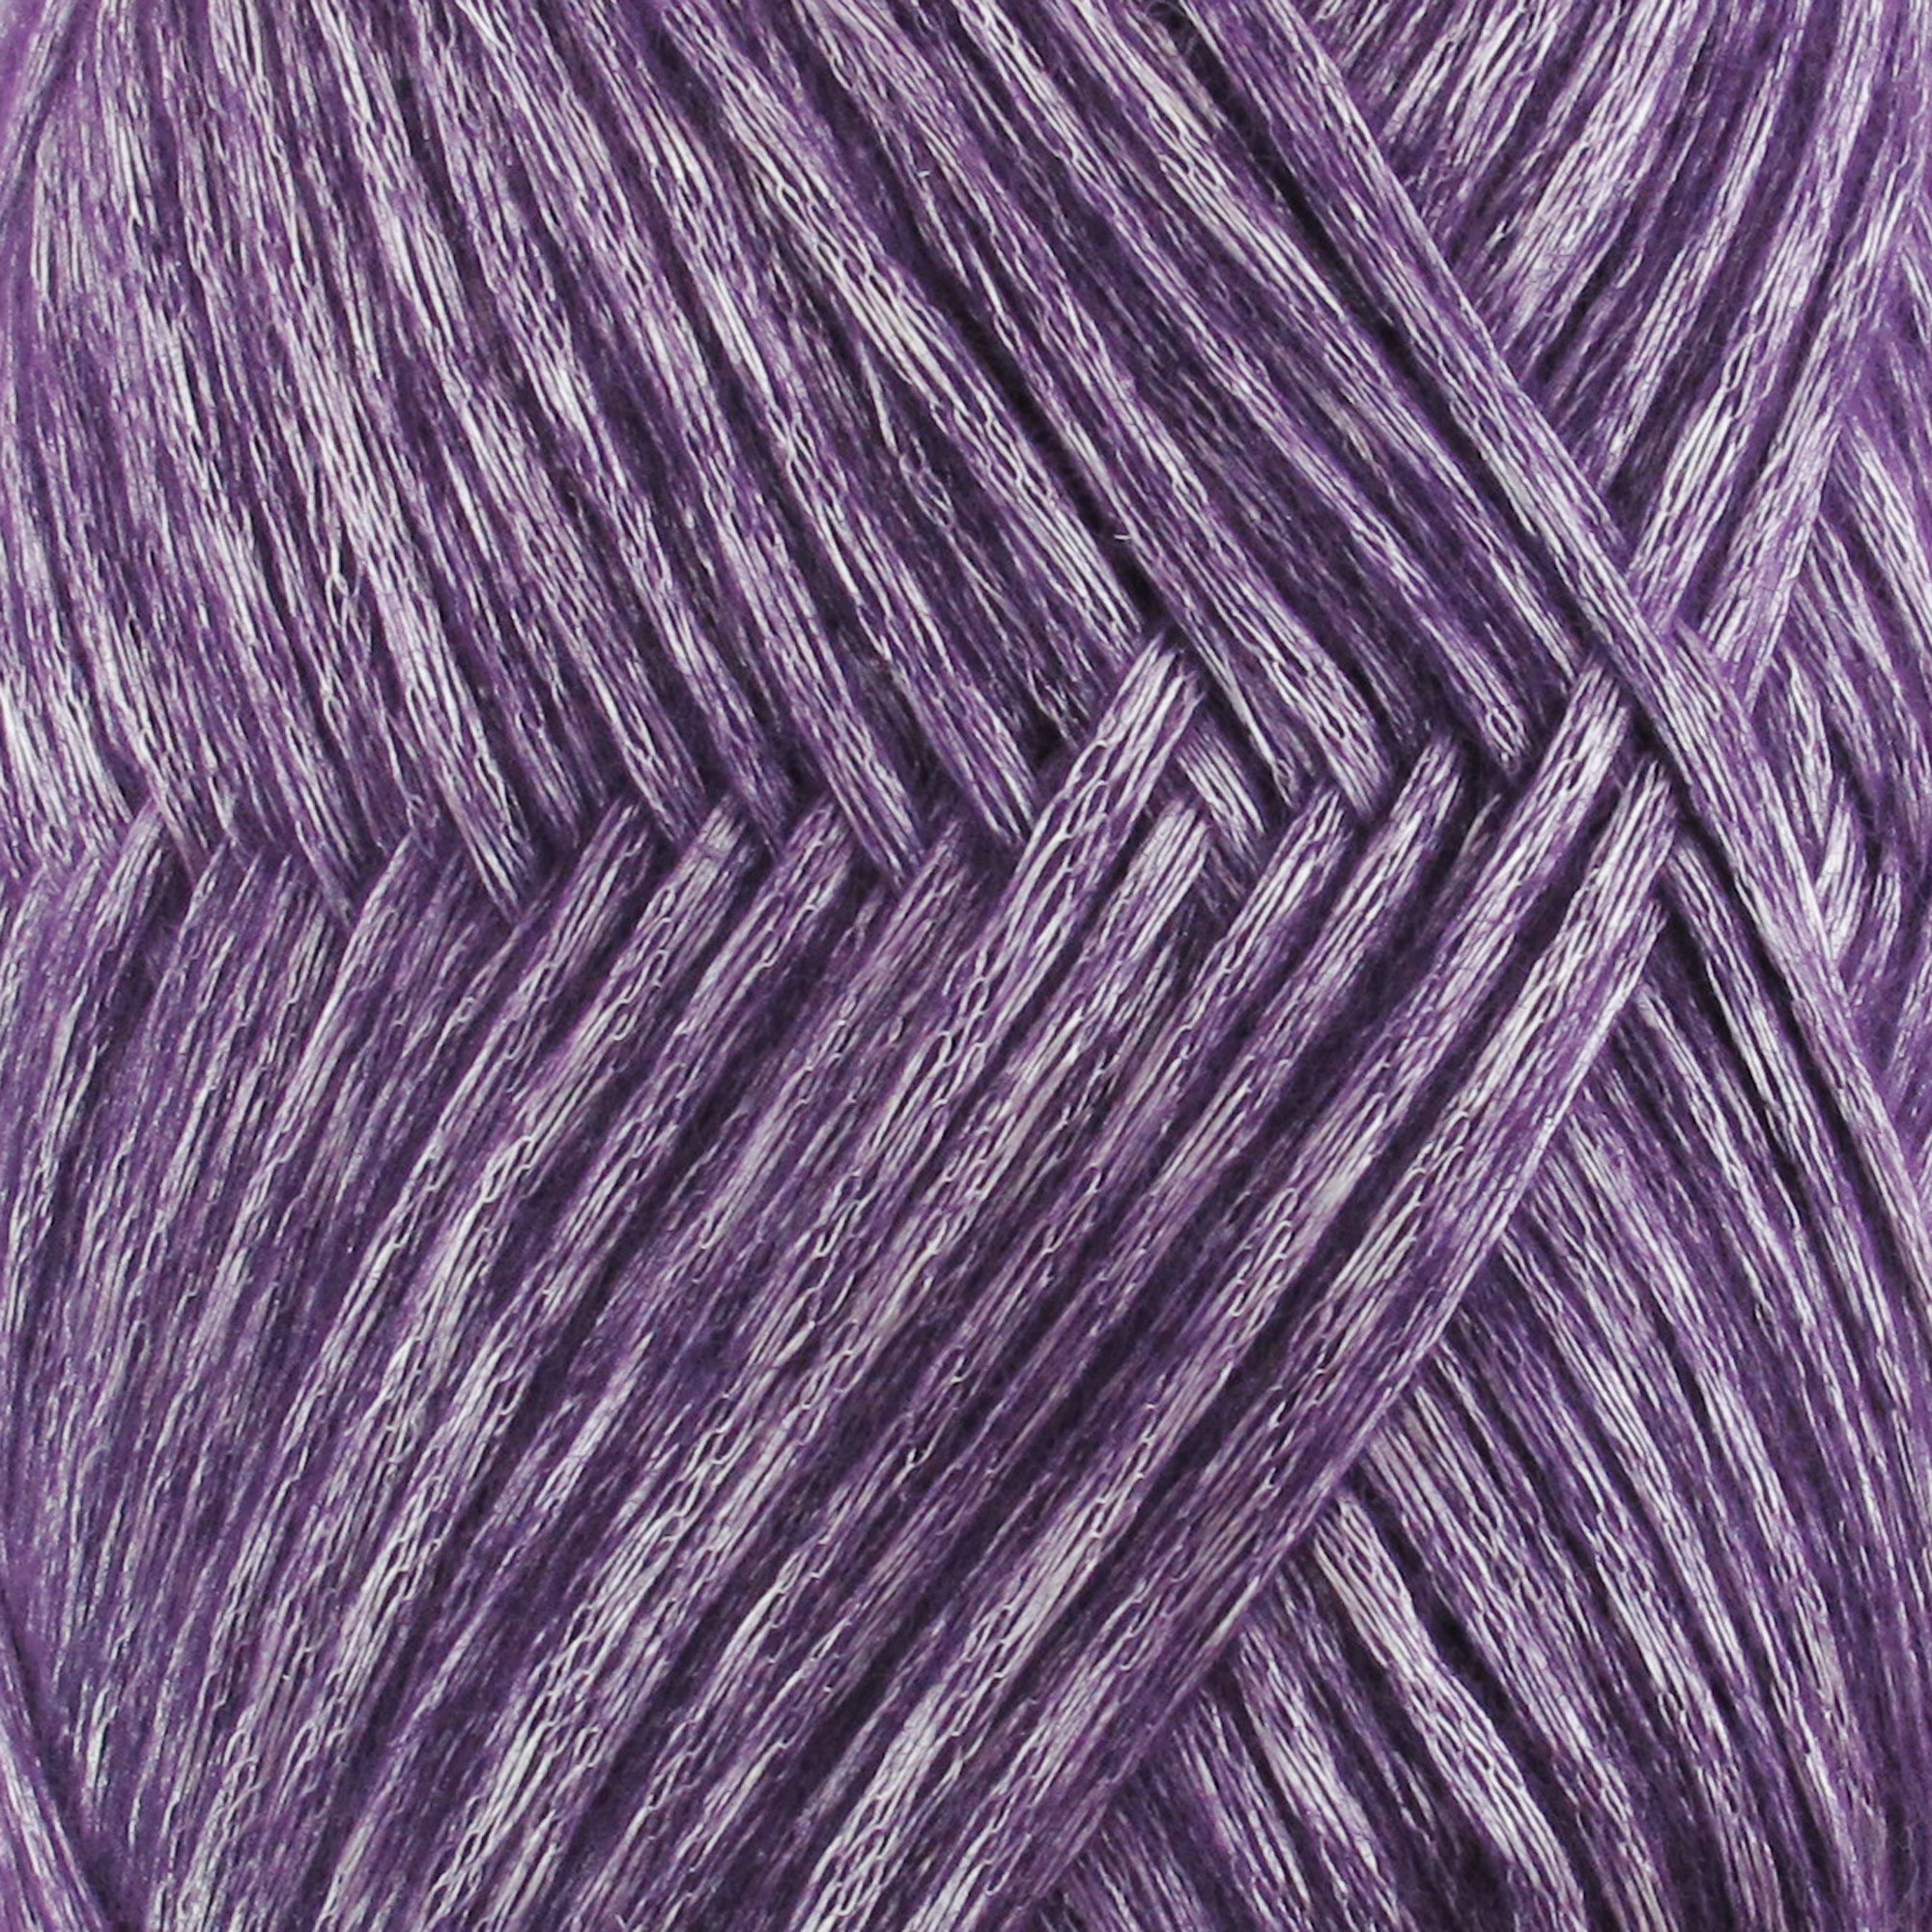 Air Breeze Yarn - Fine Light DK Weight Yarn for Socks, Sweaters, Baby Items - 50g/Skein - Passion Purple - 4 skeins